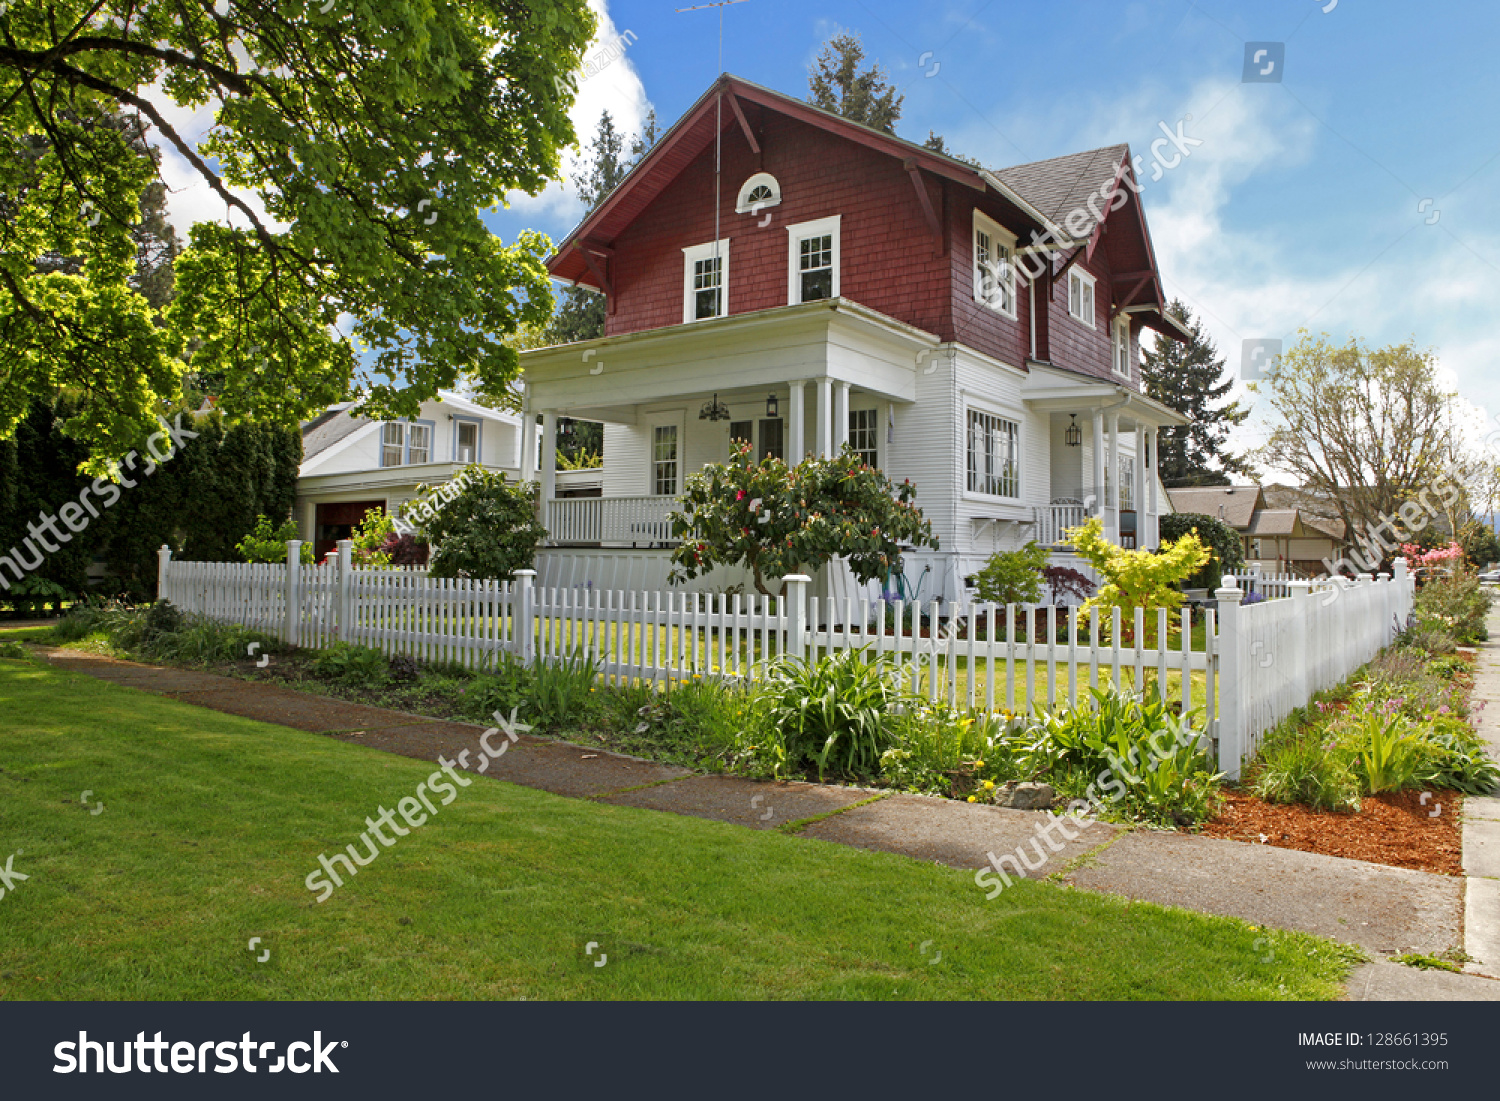 Classic large craftsman old american house stock photo for Classic american house